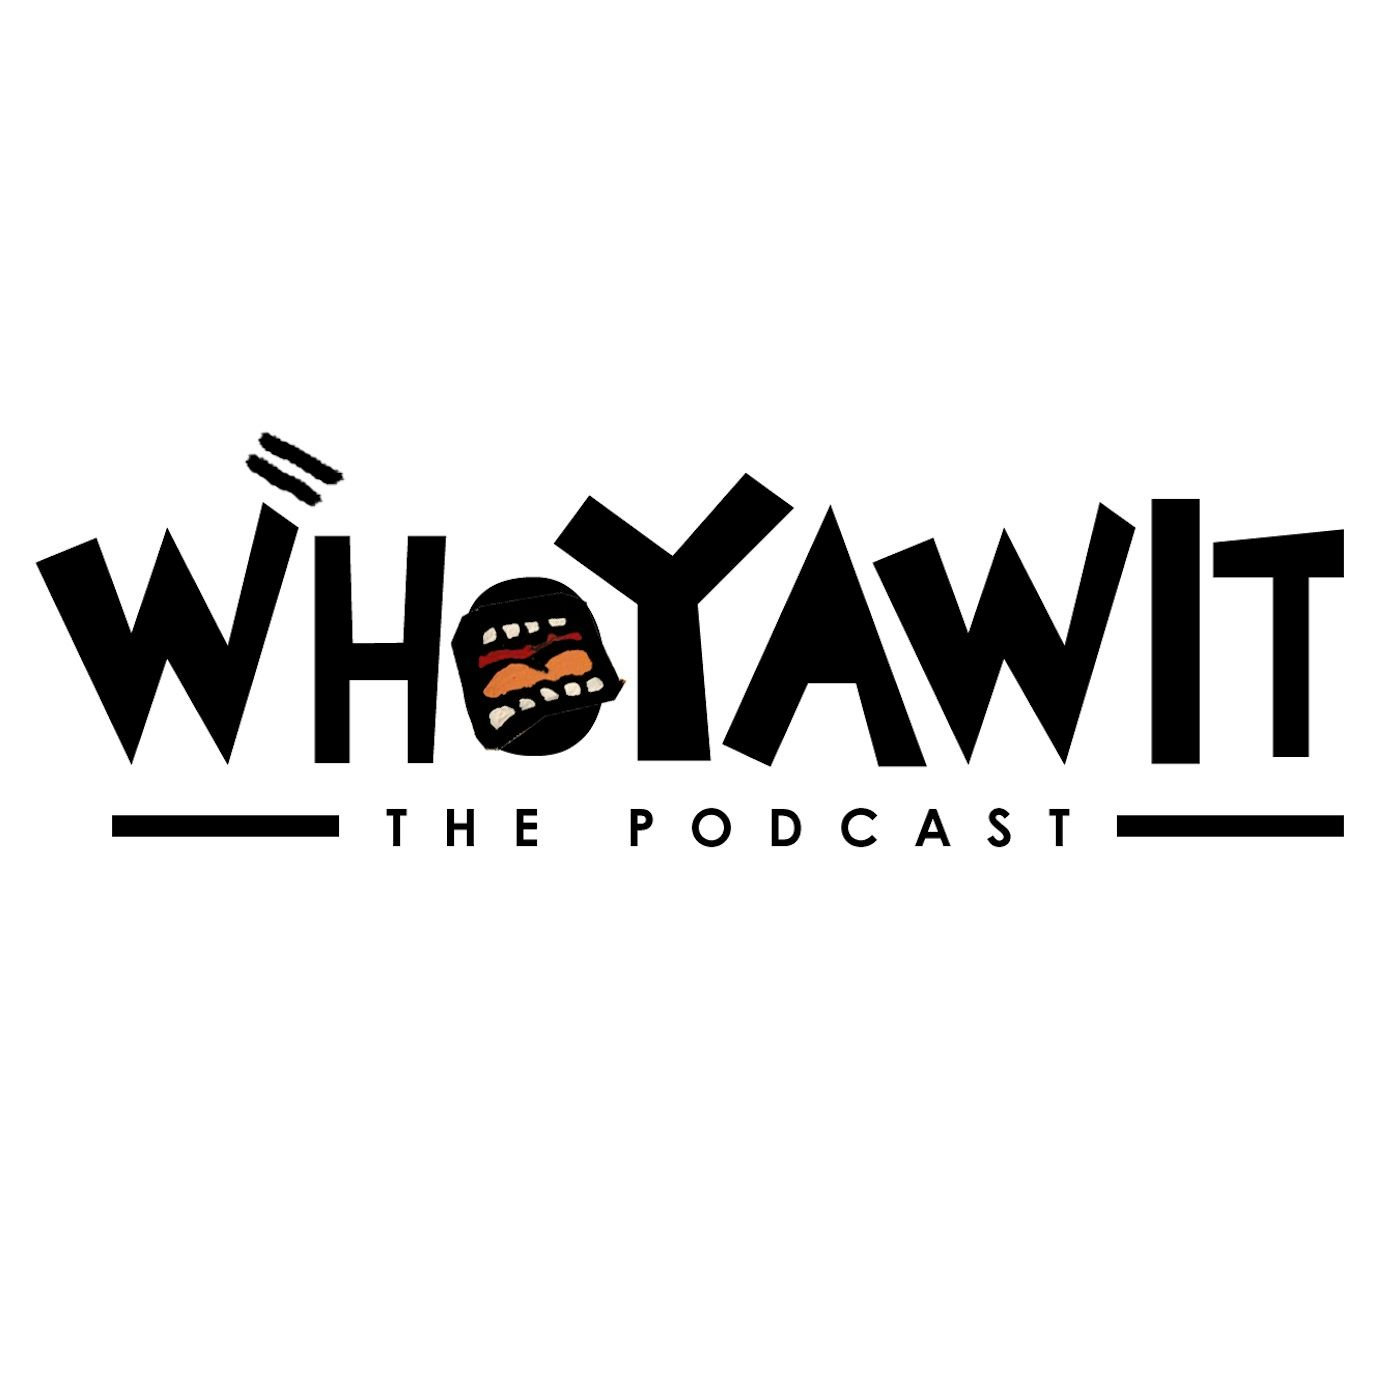 WhoYaWit: The Podcast